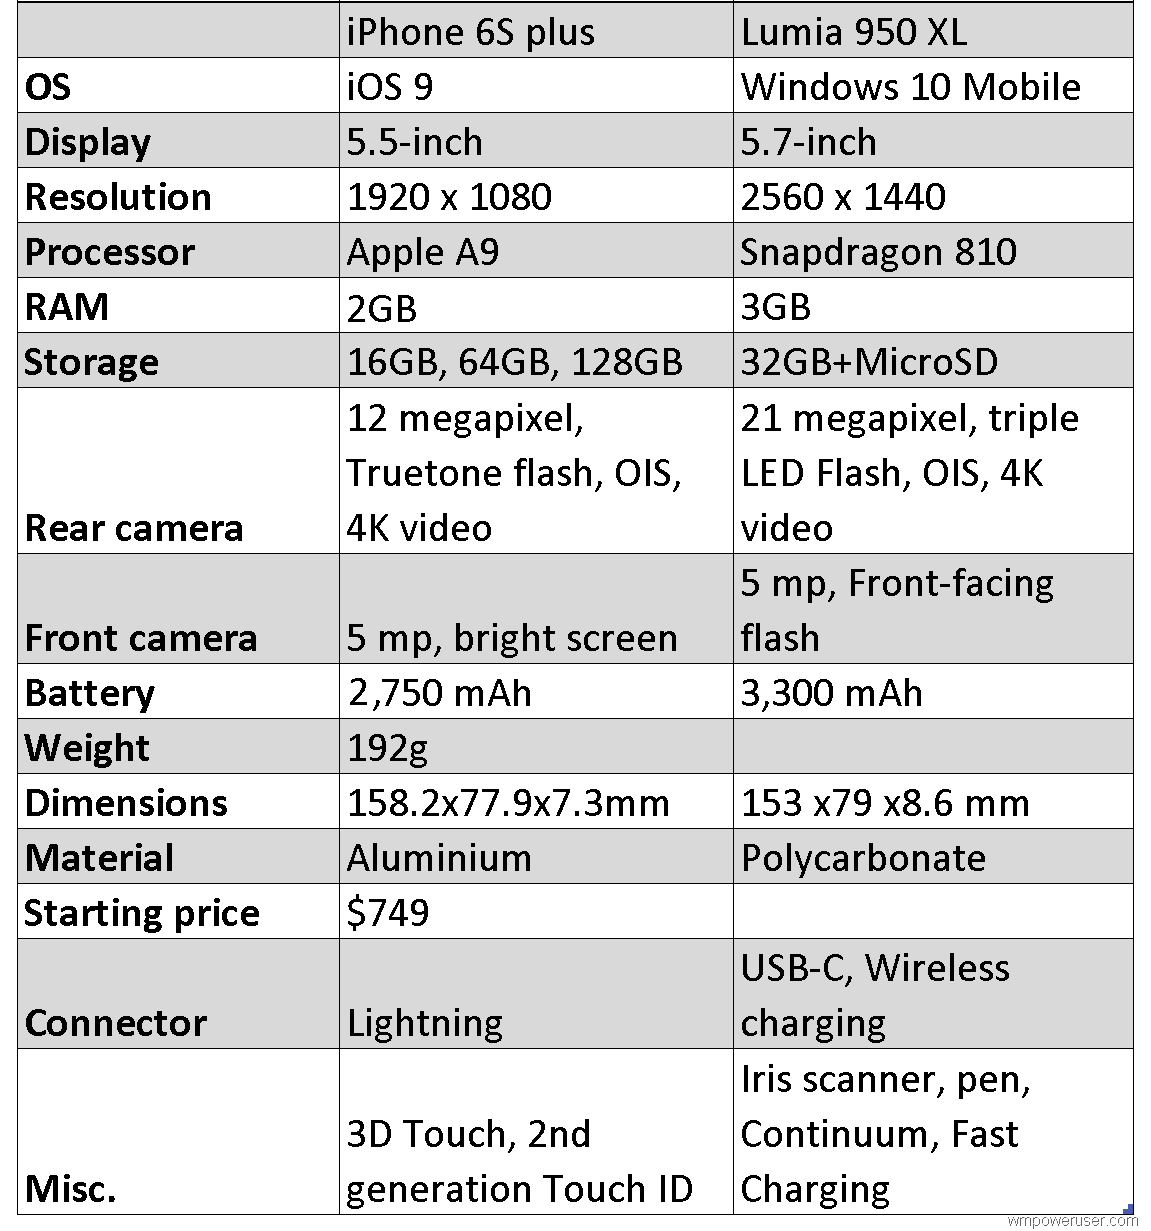 iphone 6s plus vs lumia 950 xl specs comparison